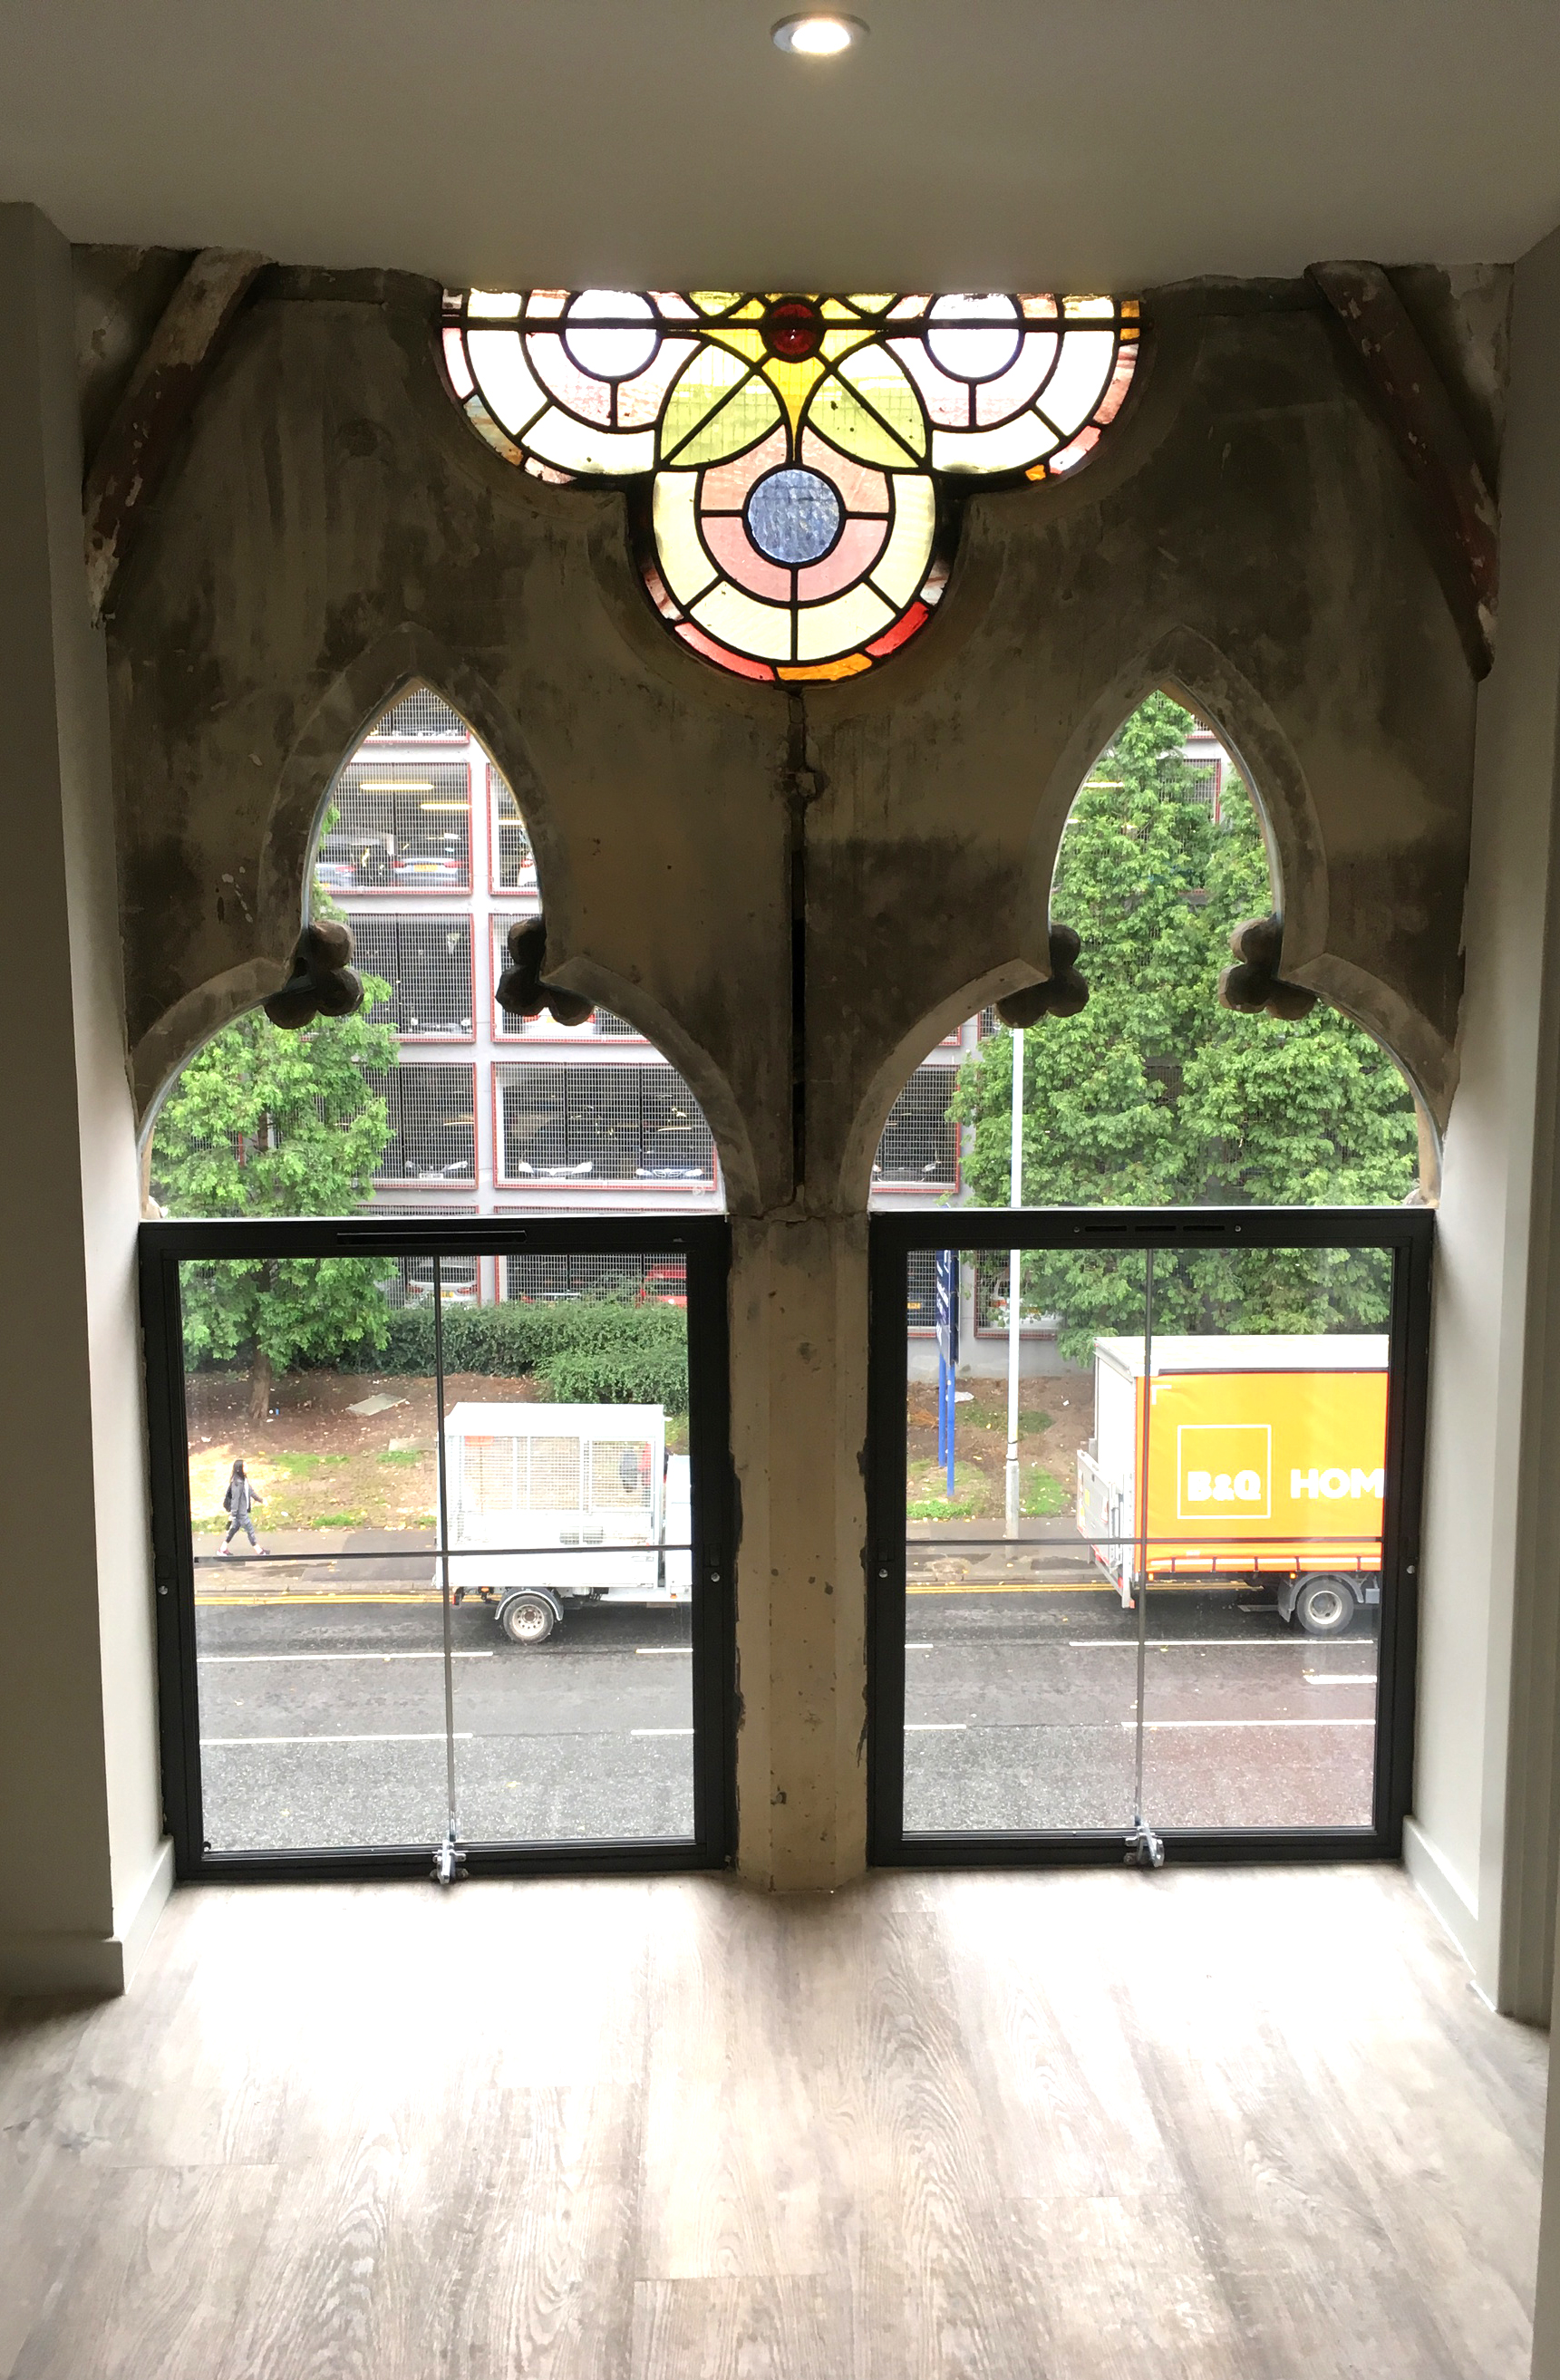 Work completes on Unitarian Chapel conversion